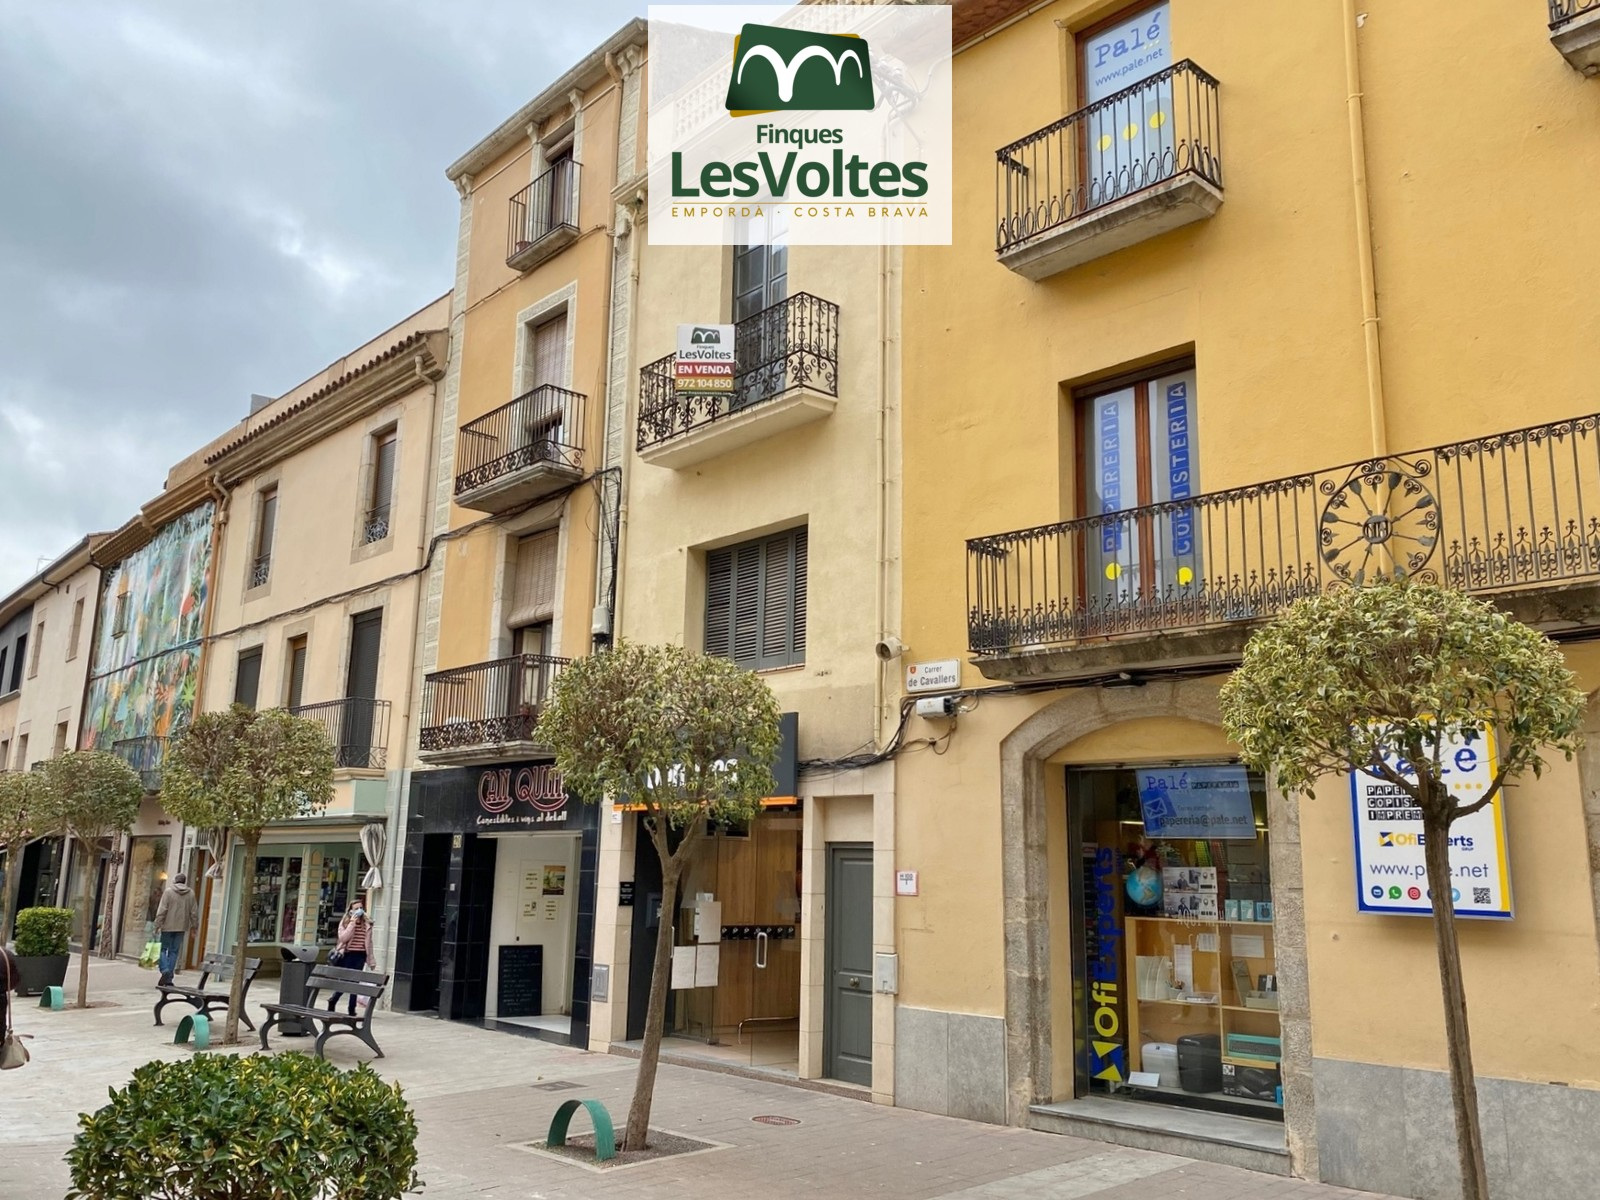 SPACIOUS FLAT WITH CHARM TO REFORM IN THE PEDESTRIAN CENTER OF PALAFRUGELL. PROPERTY OF 121 M2 WITH TERRACE AND MAGNIFICENT V